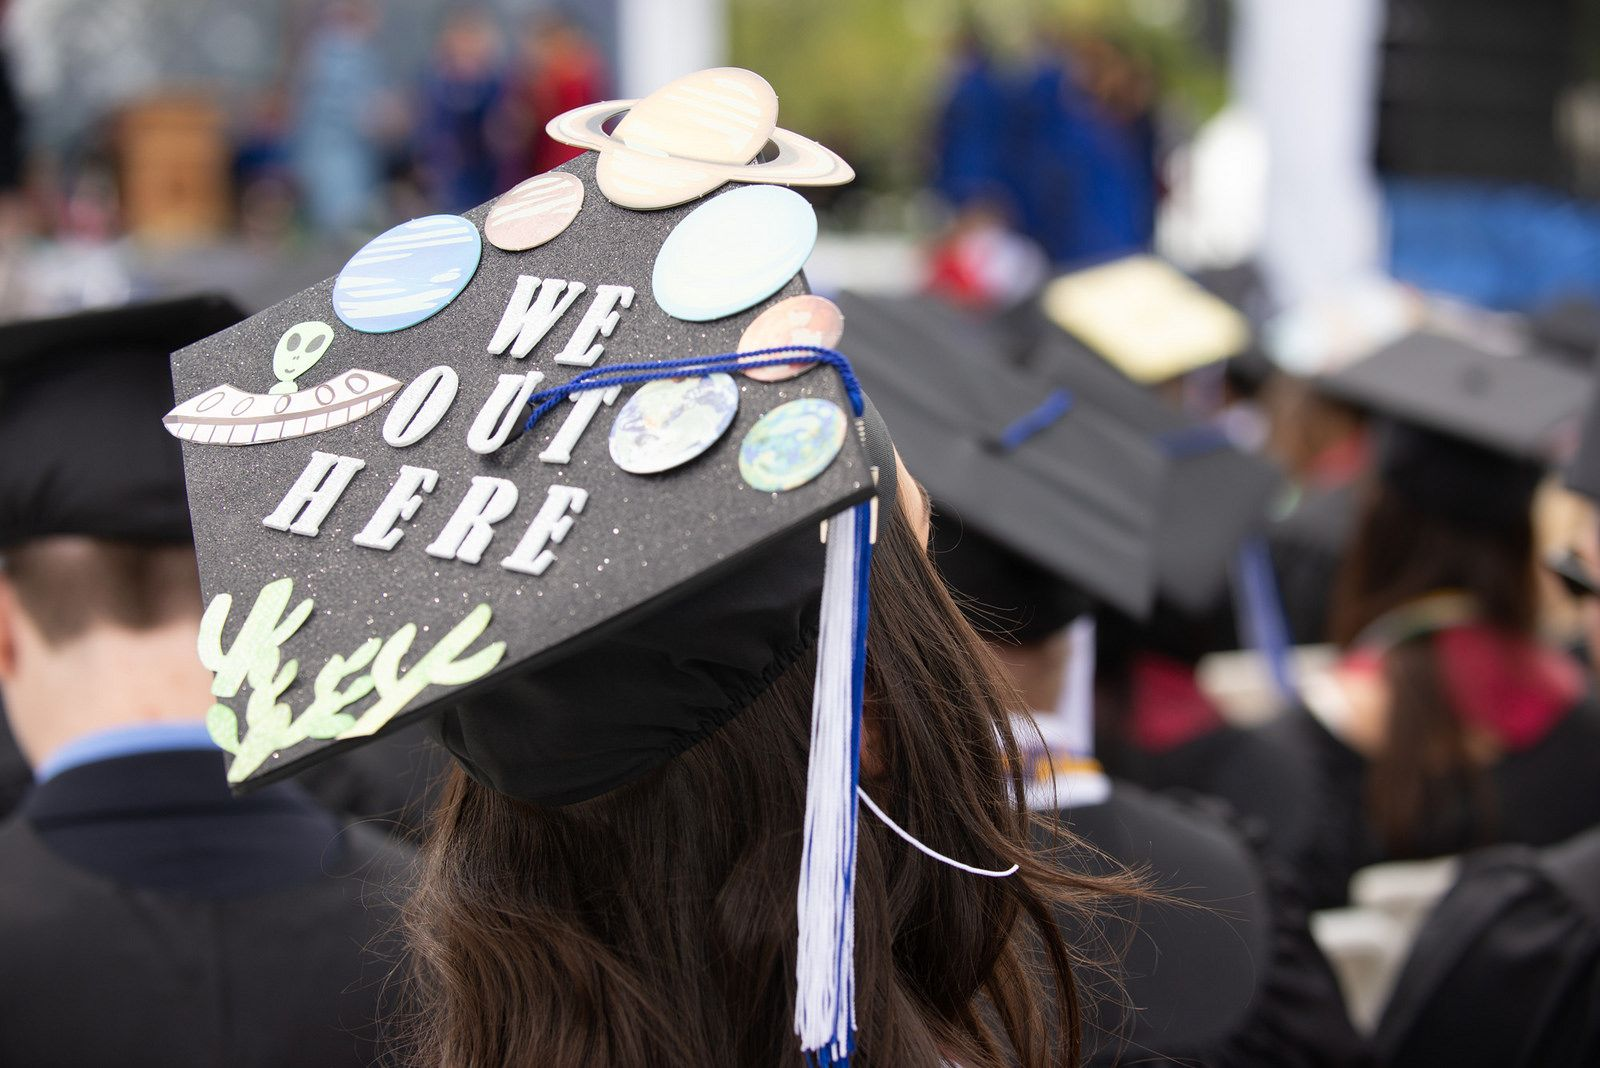 Heres An Out Of This World Outer Space Themed Grad Cap From Unh